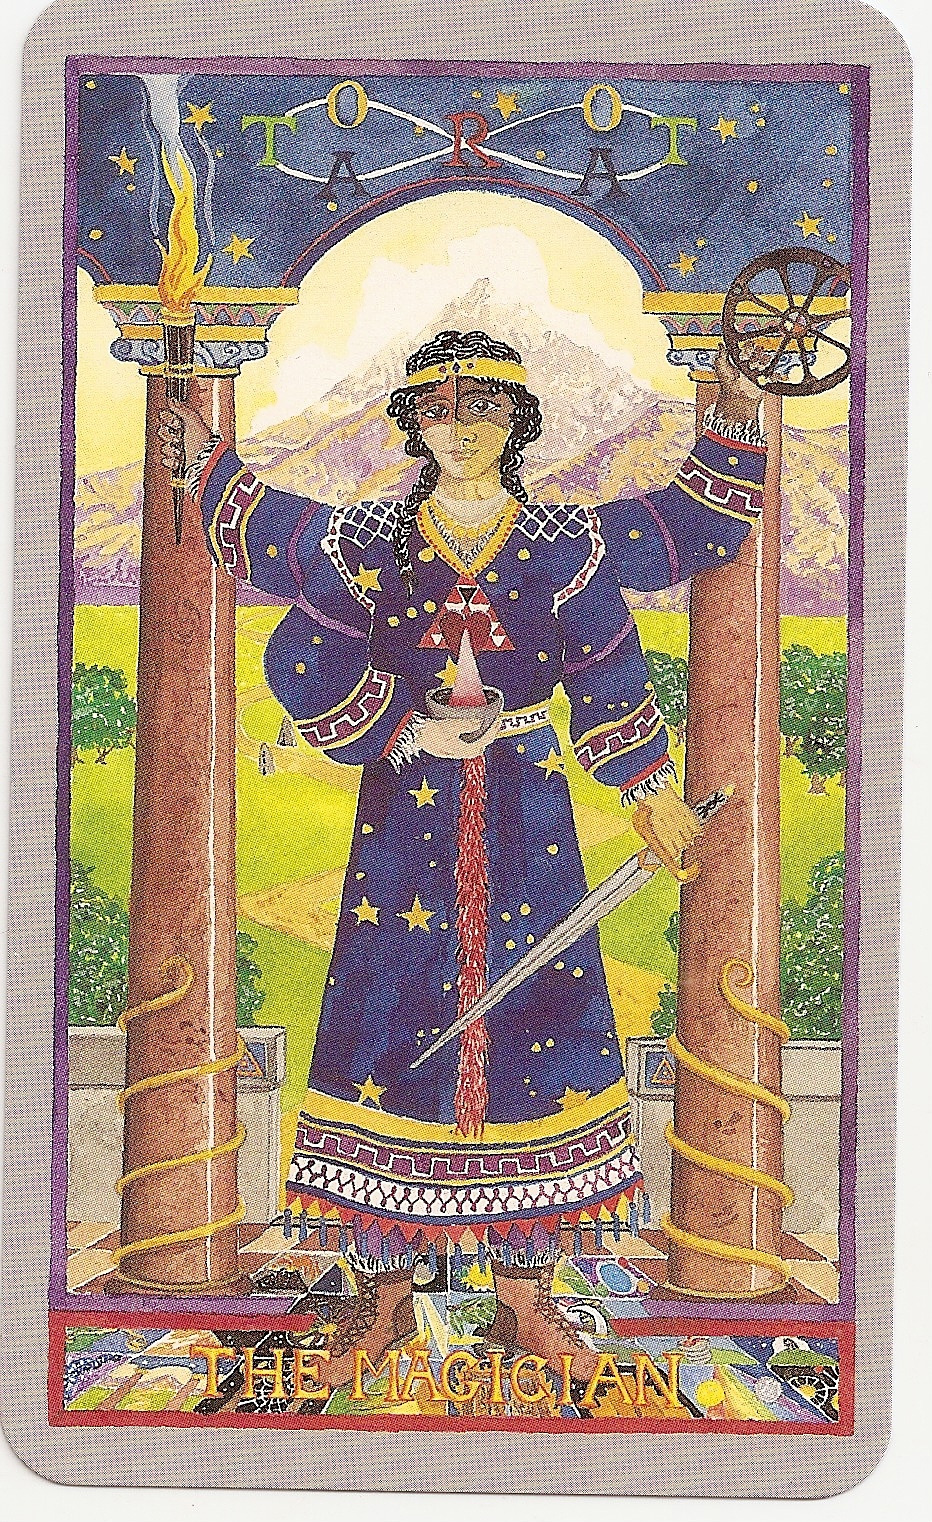 Tarot and more: 4) Tarot Symbolism: The Caduceus: